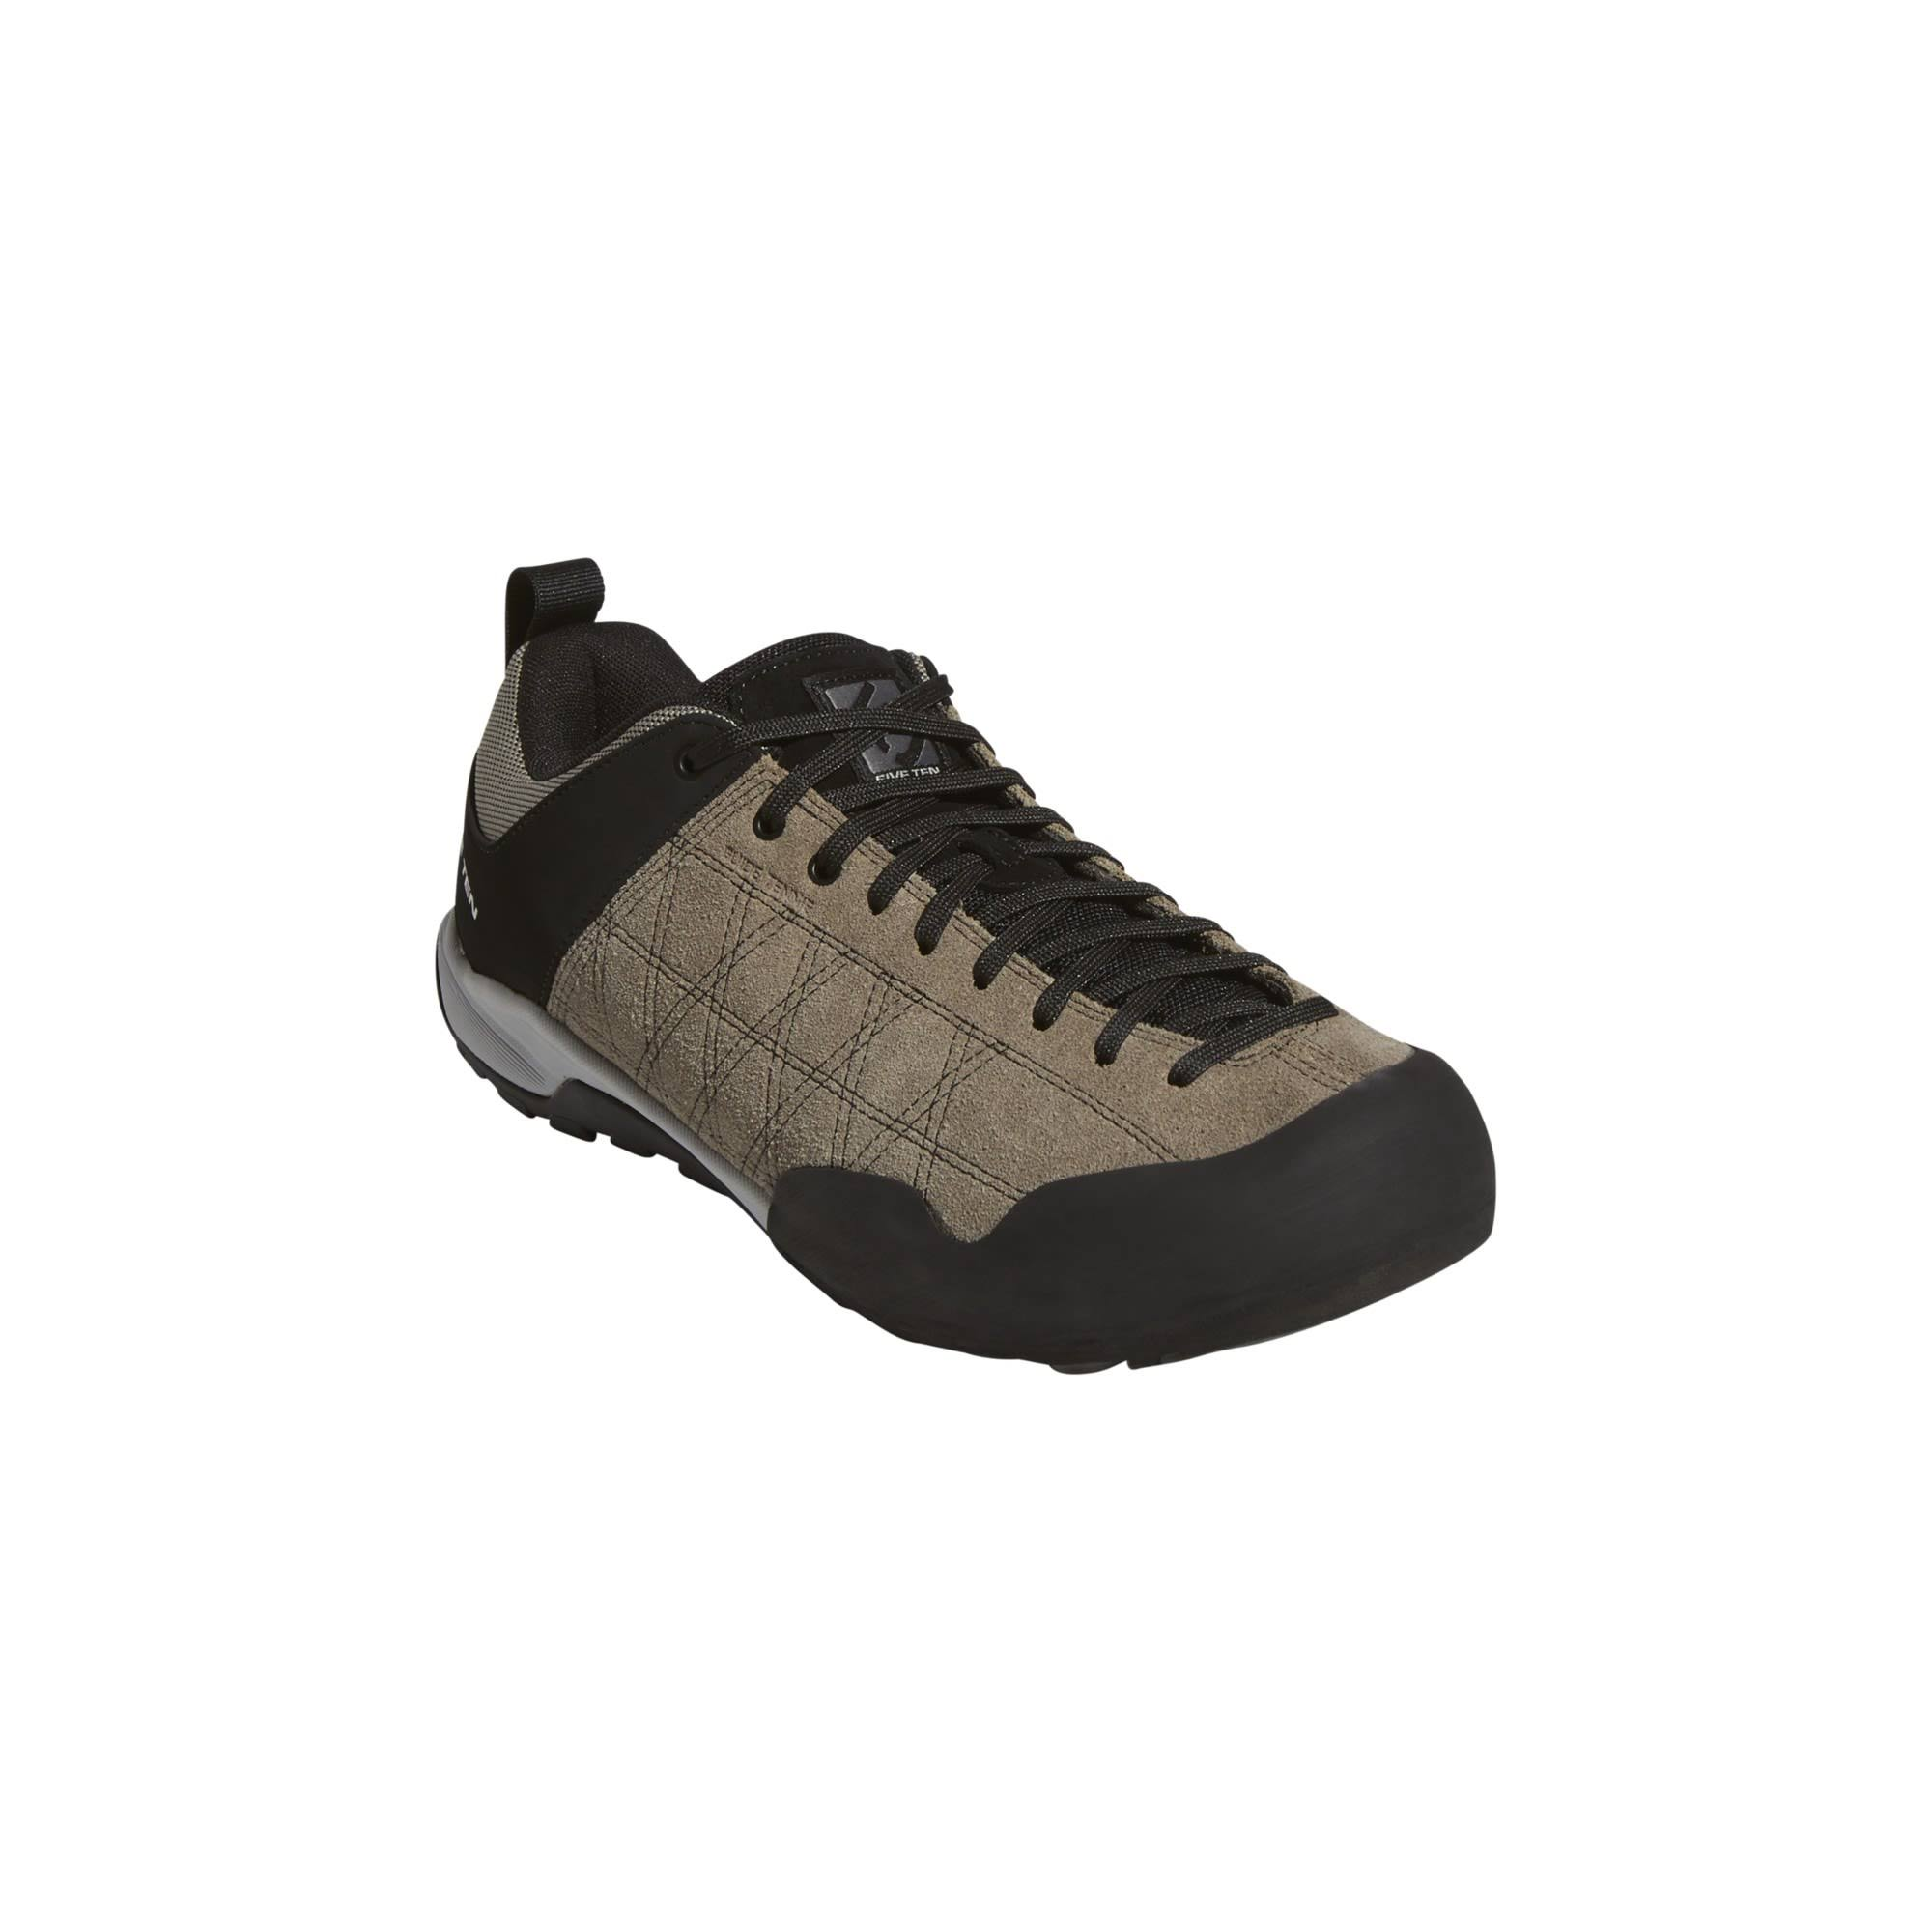 Five Ten Guide Tennie Hiking and Approach Shoes for Men, UK 10.5, Simple Brown -Core Black -Grey Four